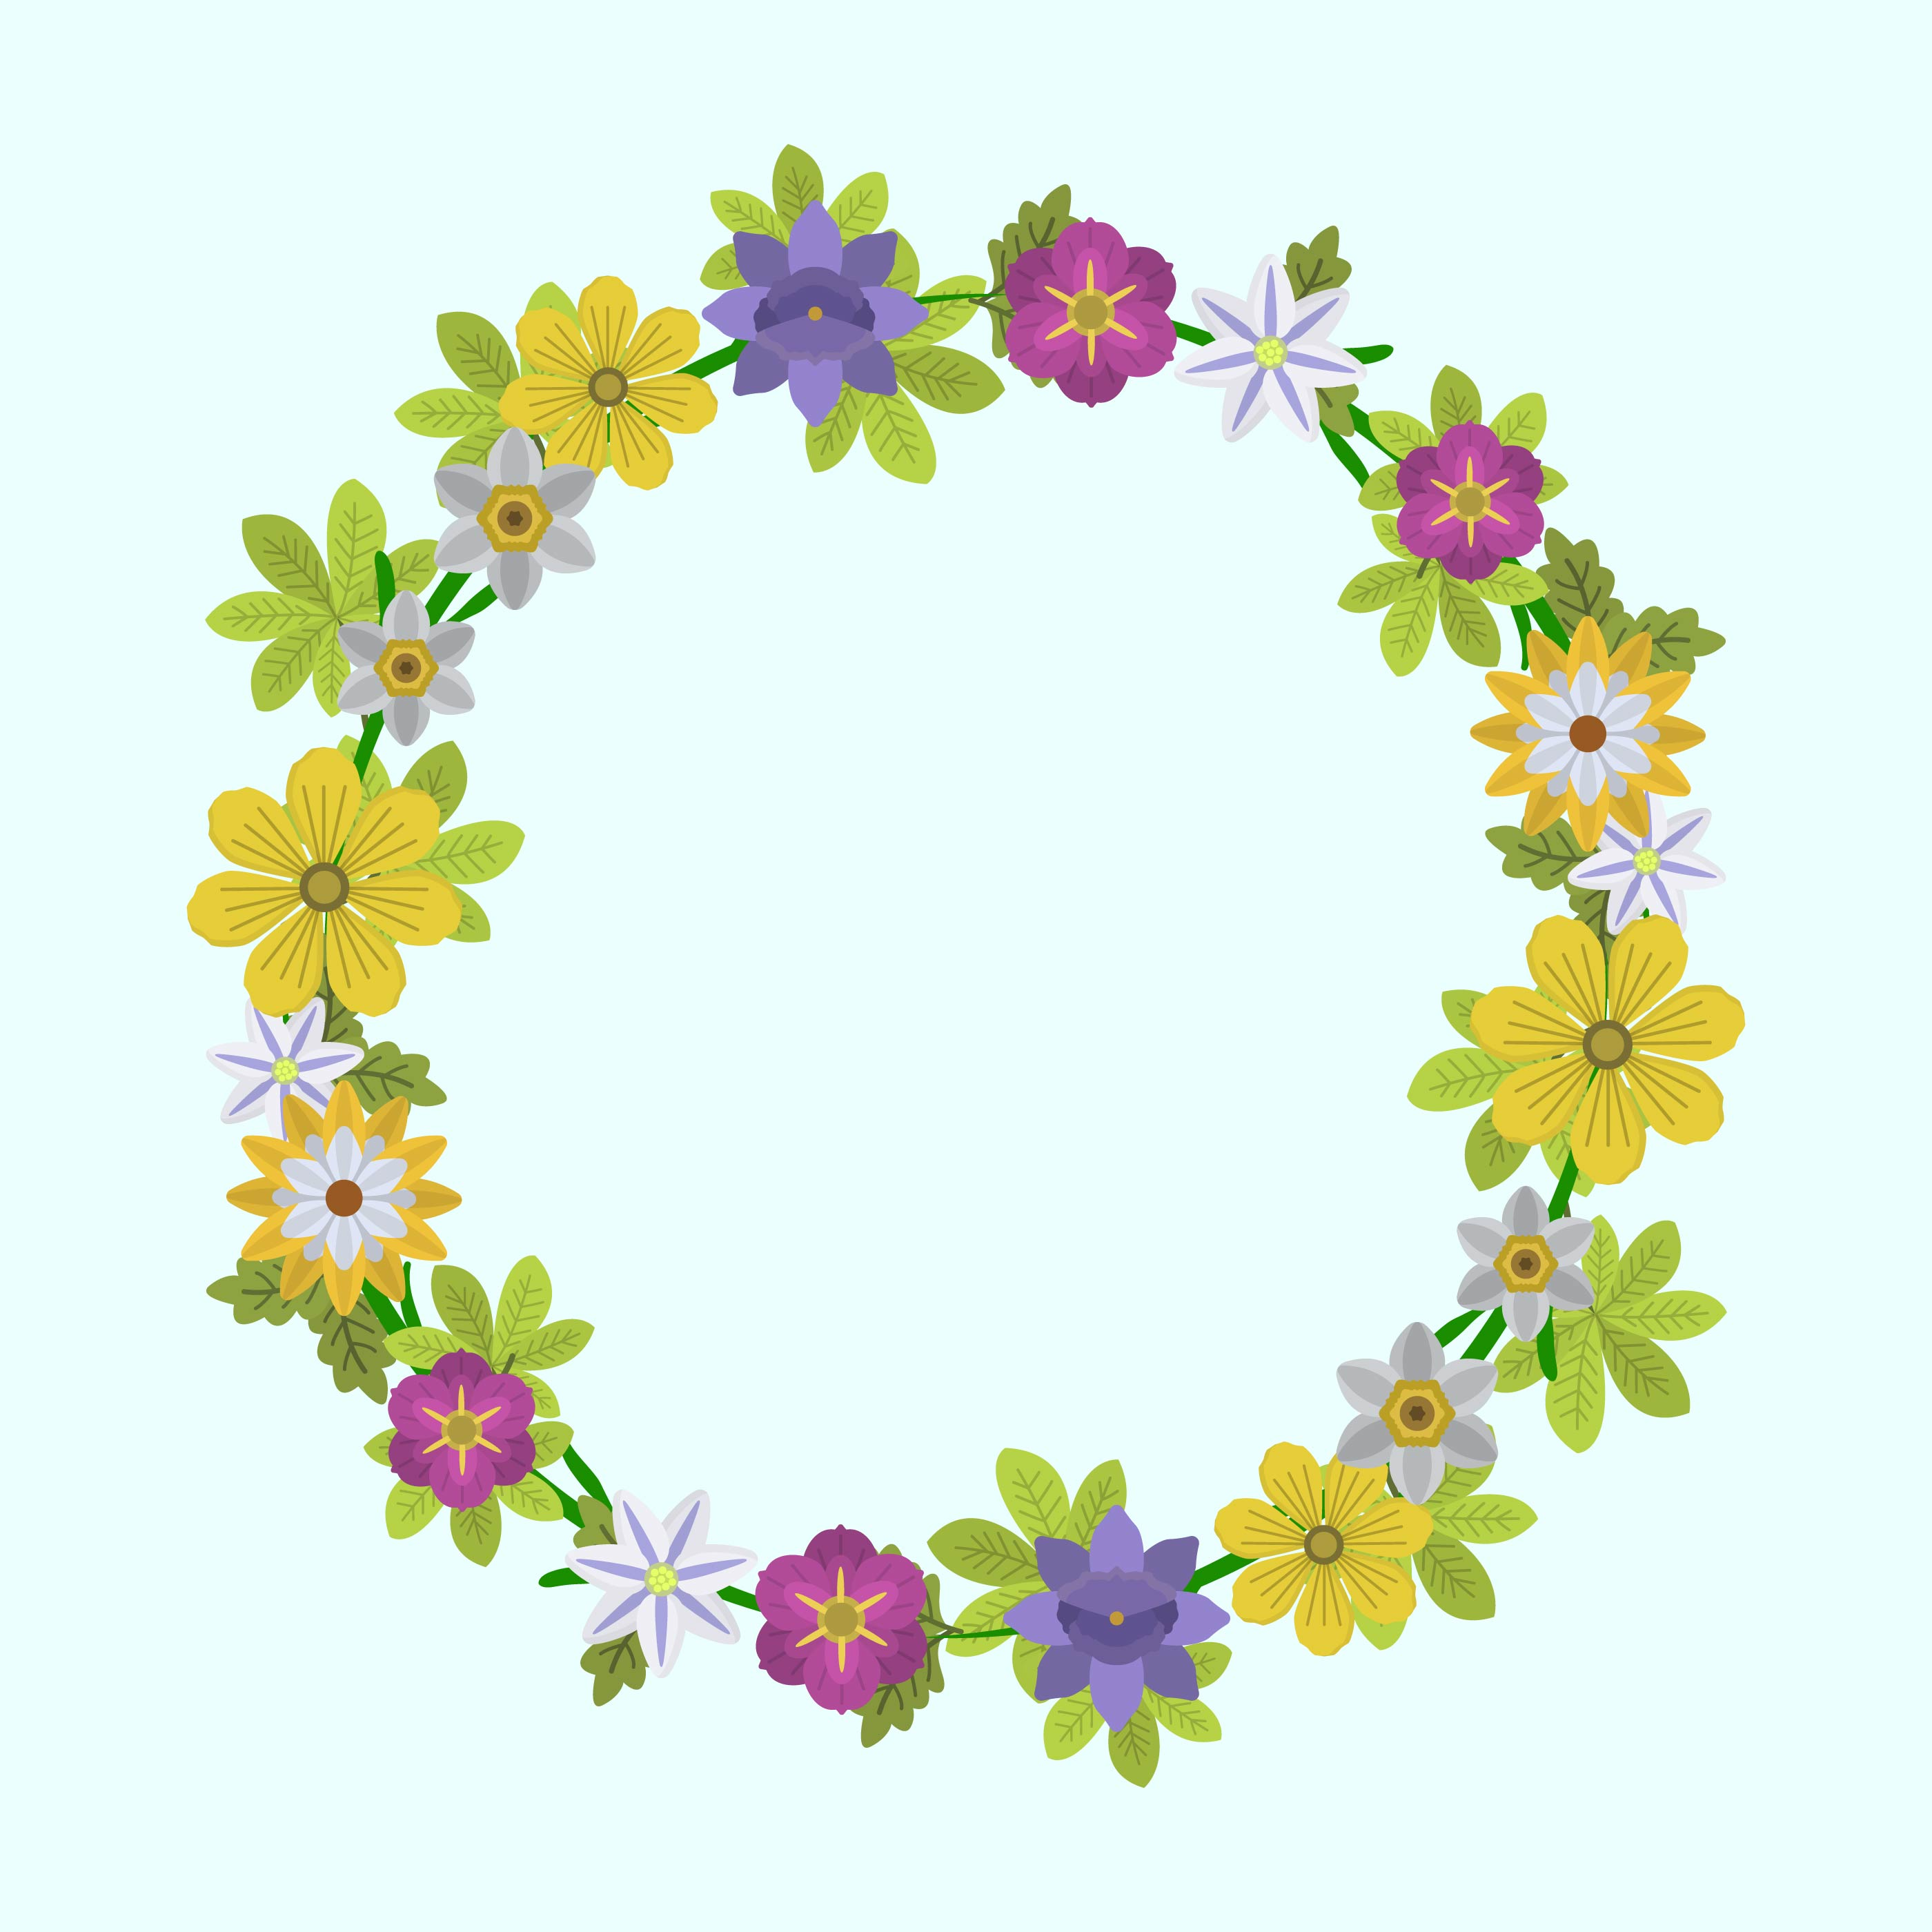 Floral Wreath Free Vector Art